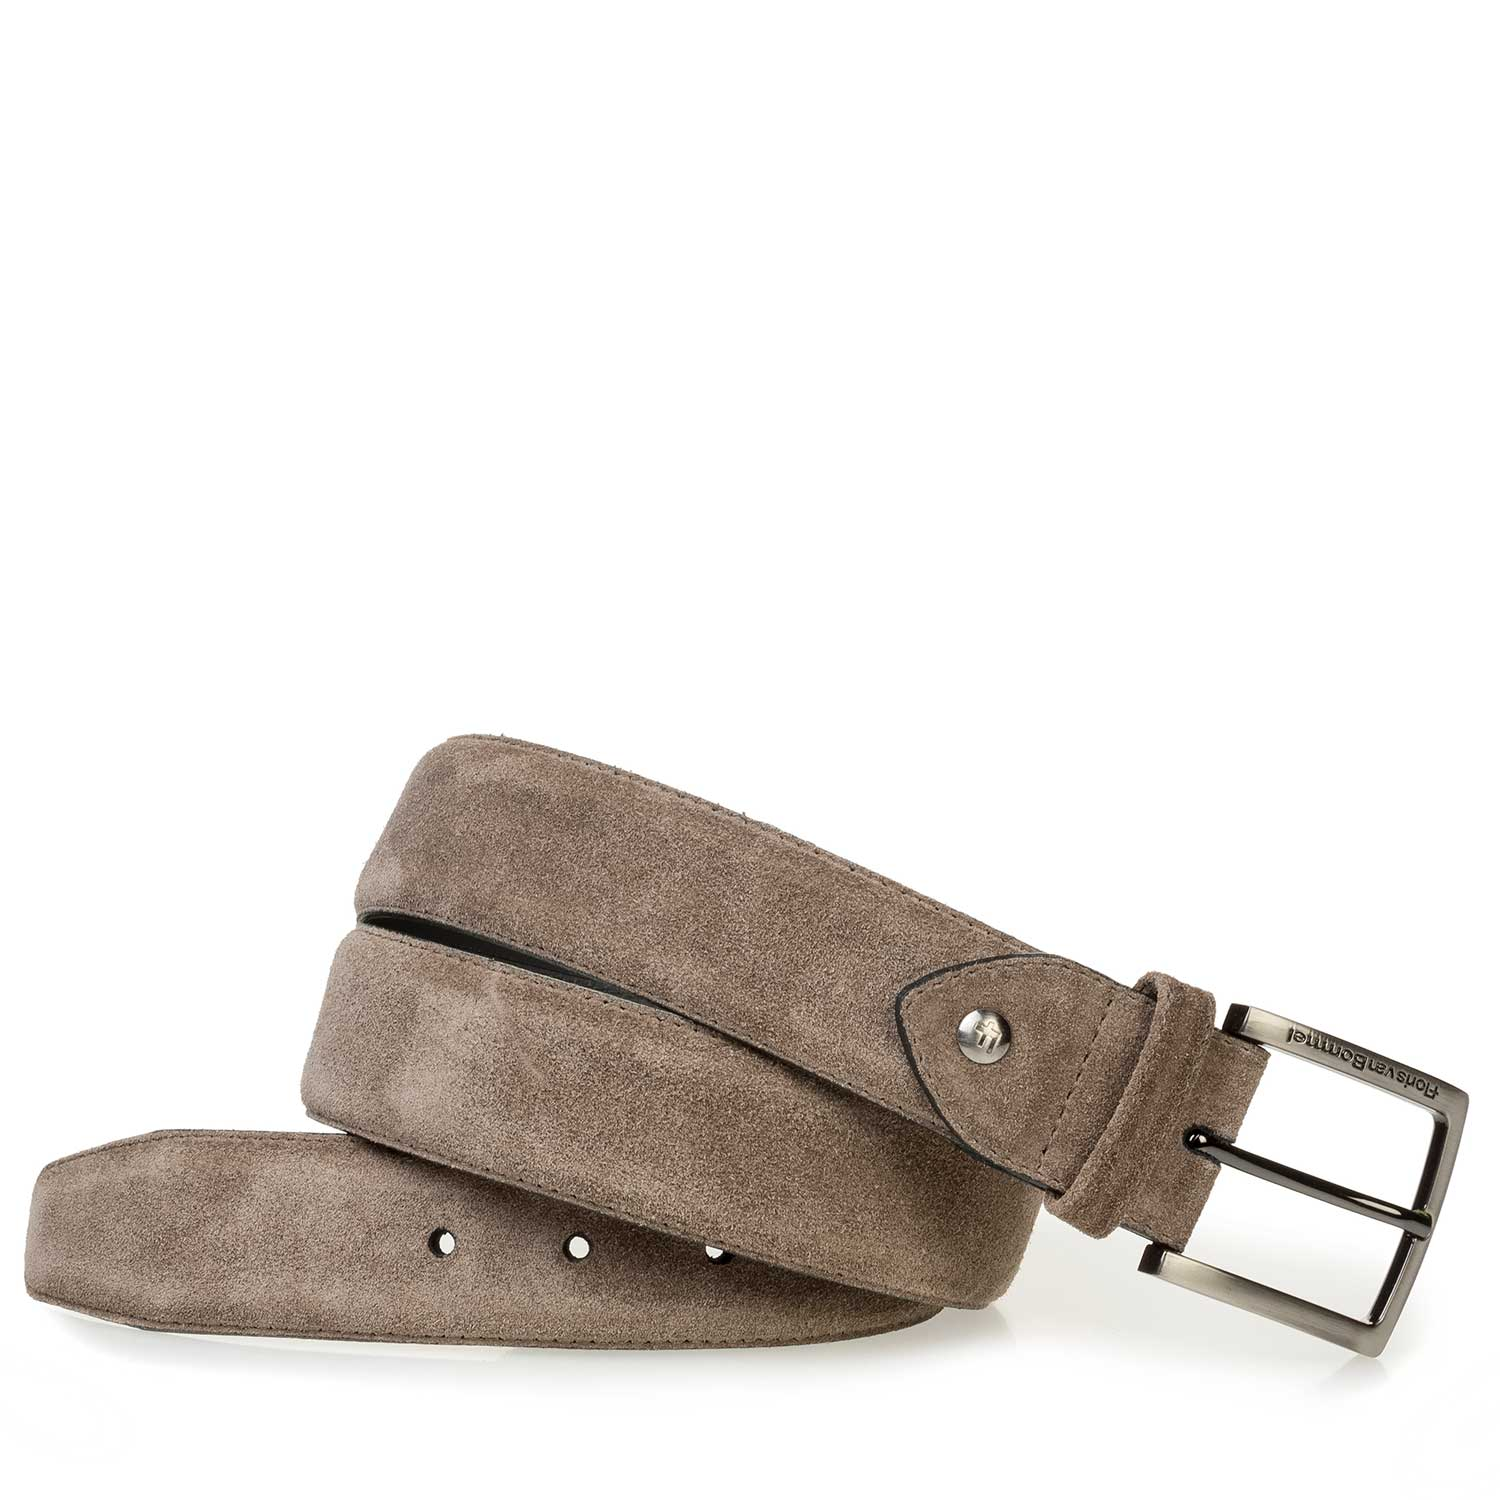 75189/68 - Taupe-coloured washed suede leather belt